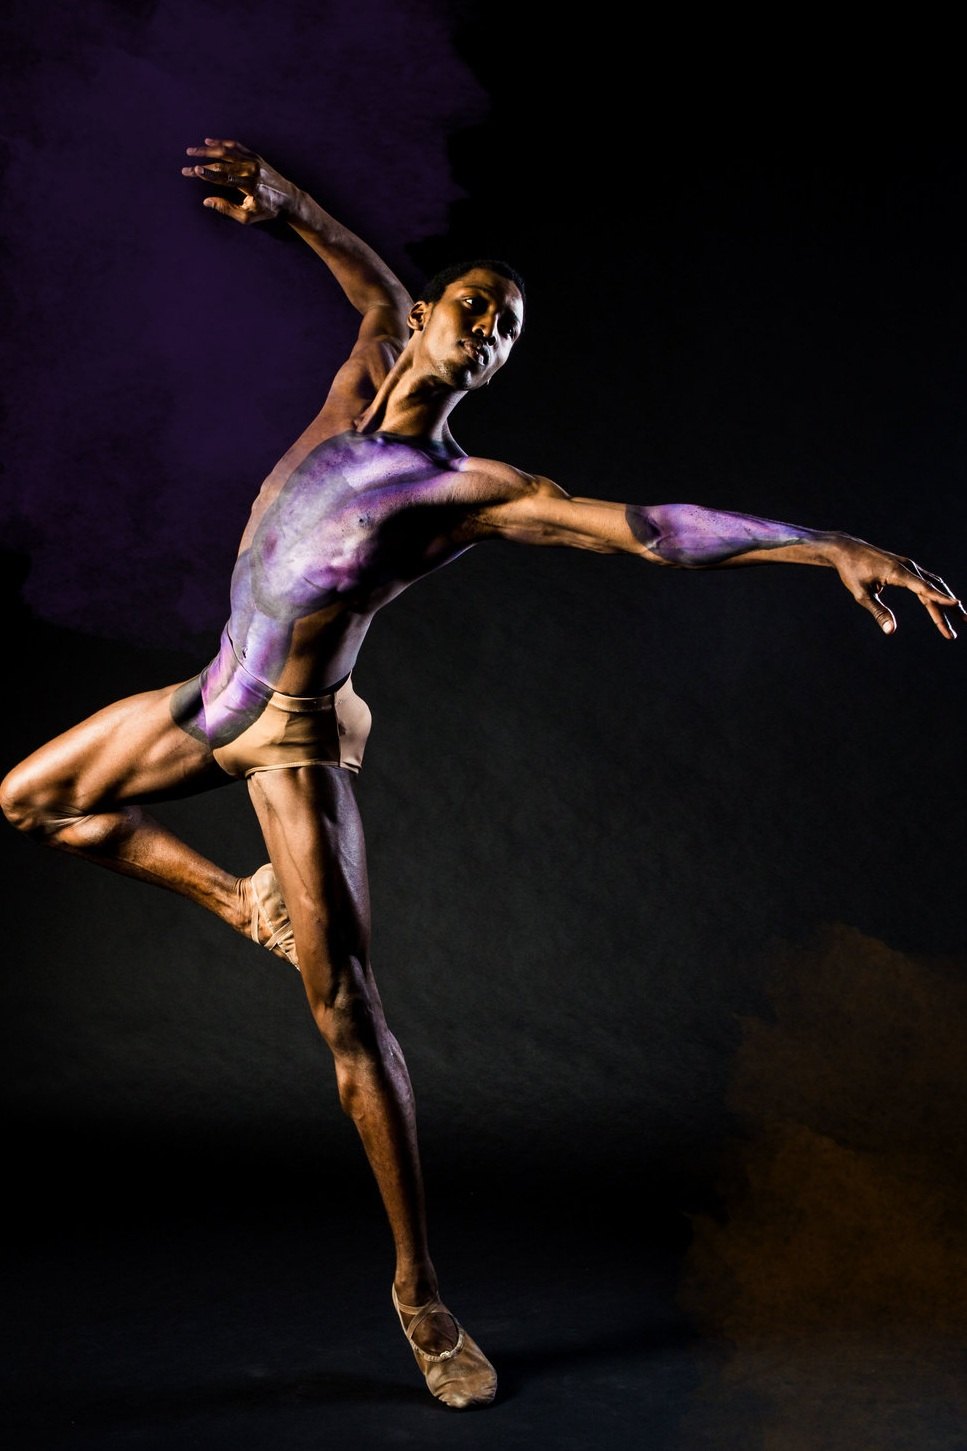 VISION - By harnessing the Black community's inherent creative spirit, The Black Iris Project will encourage and inspire youth of color to pursue art, movement and music as an expressive outlet and means for collective healing, as well as educating audiences about how Black history relates to the modern Black journey.( pic. Calvin Royal III, American Ballet Theatre)